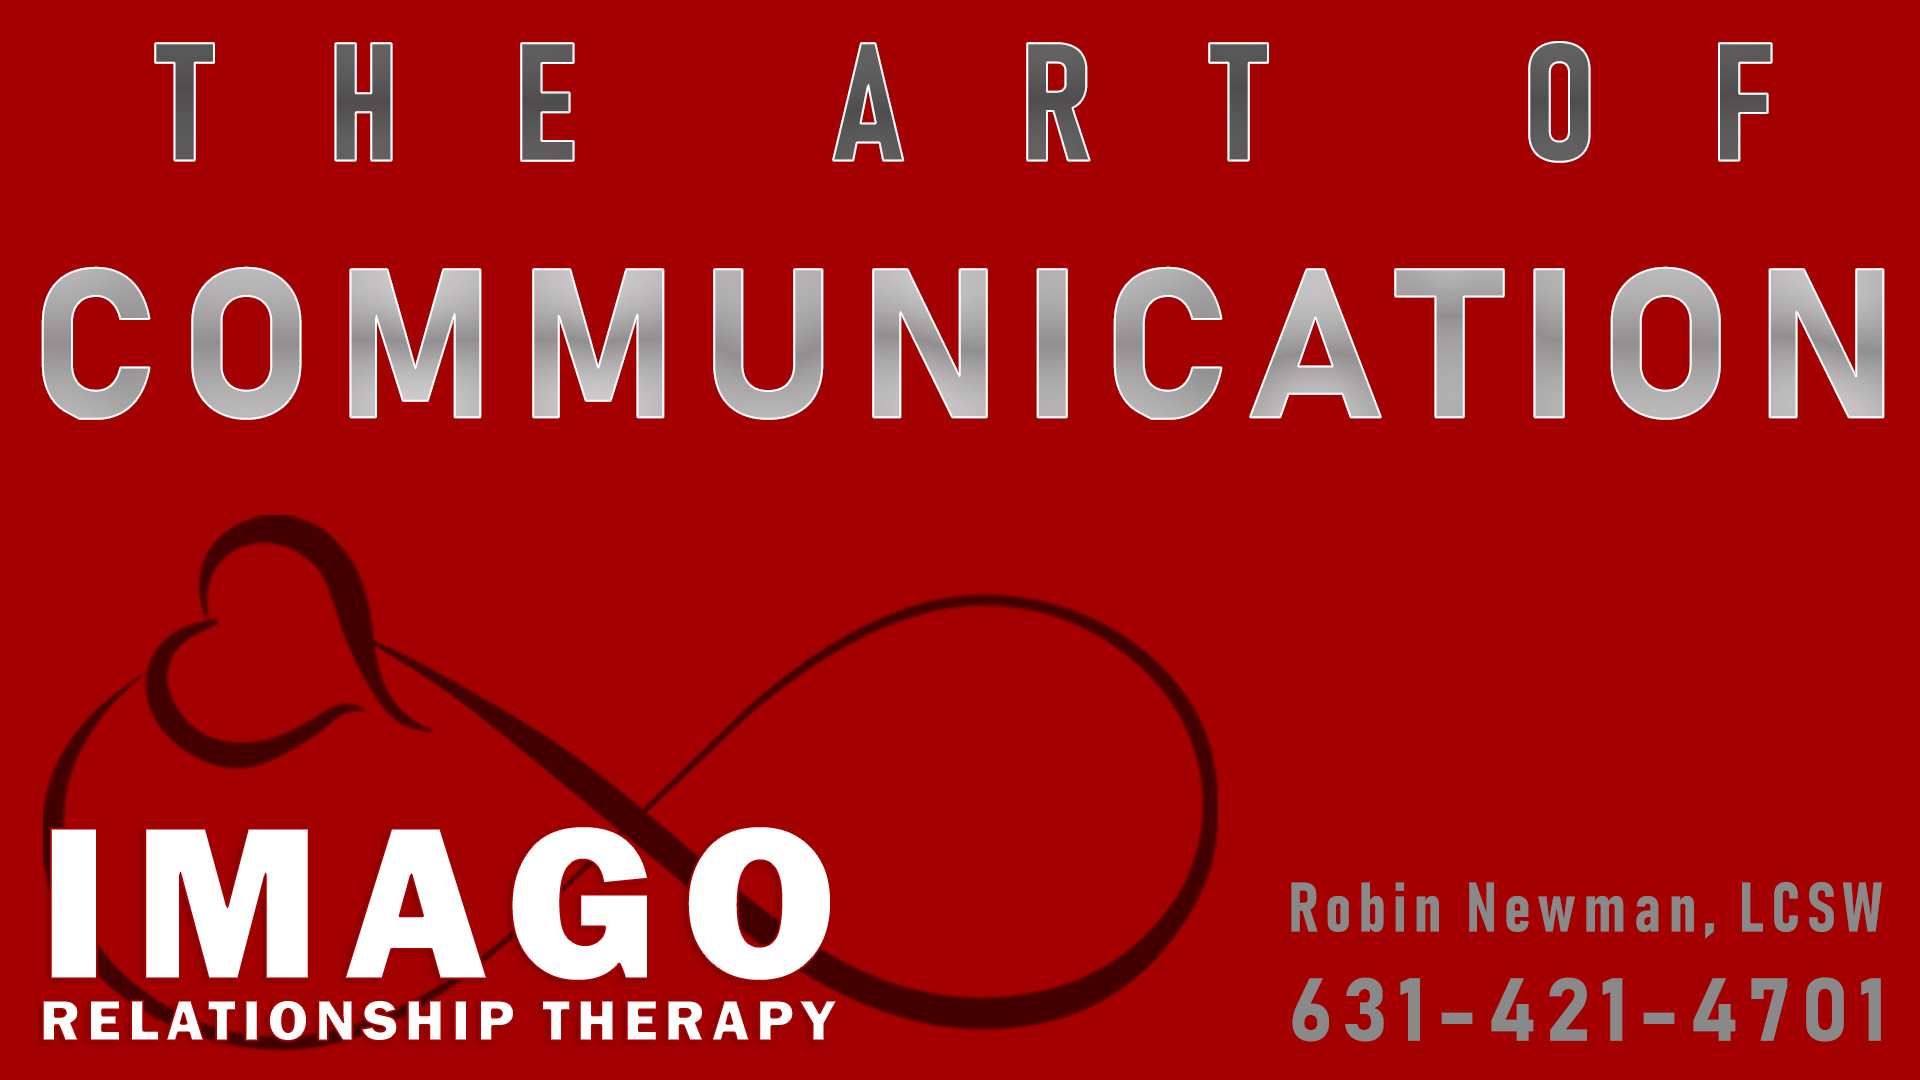 communication process of Imago relationship therapy